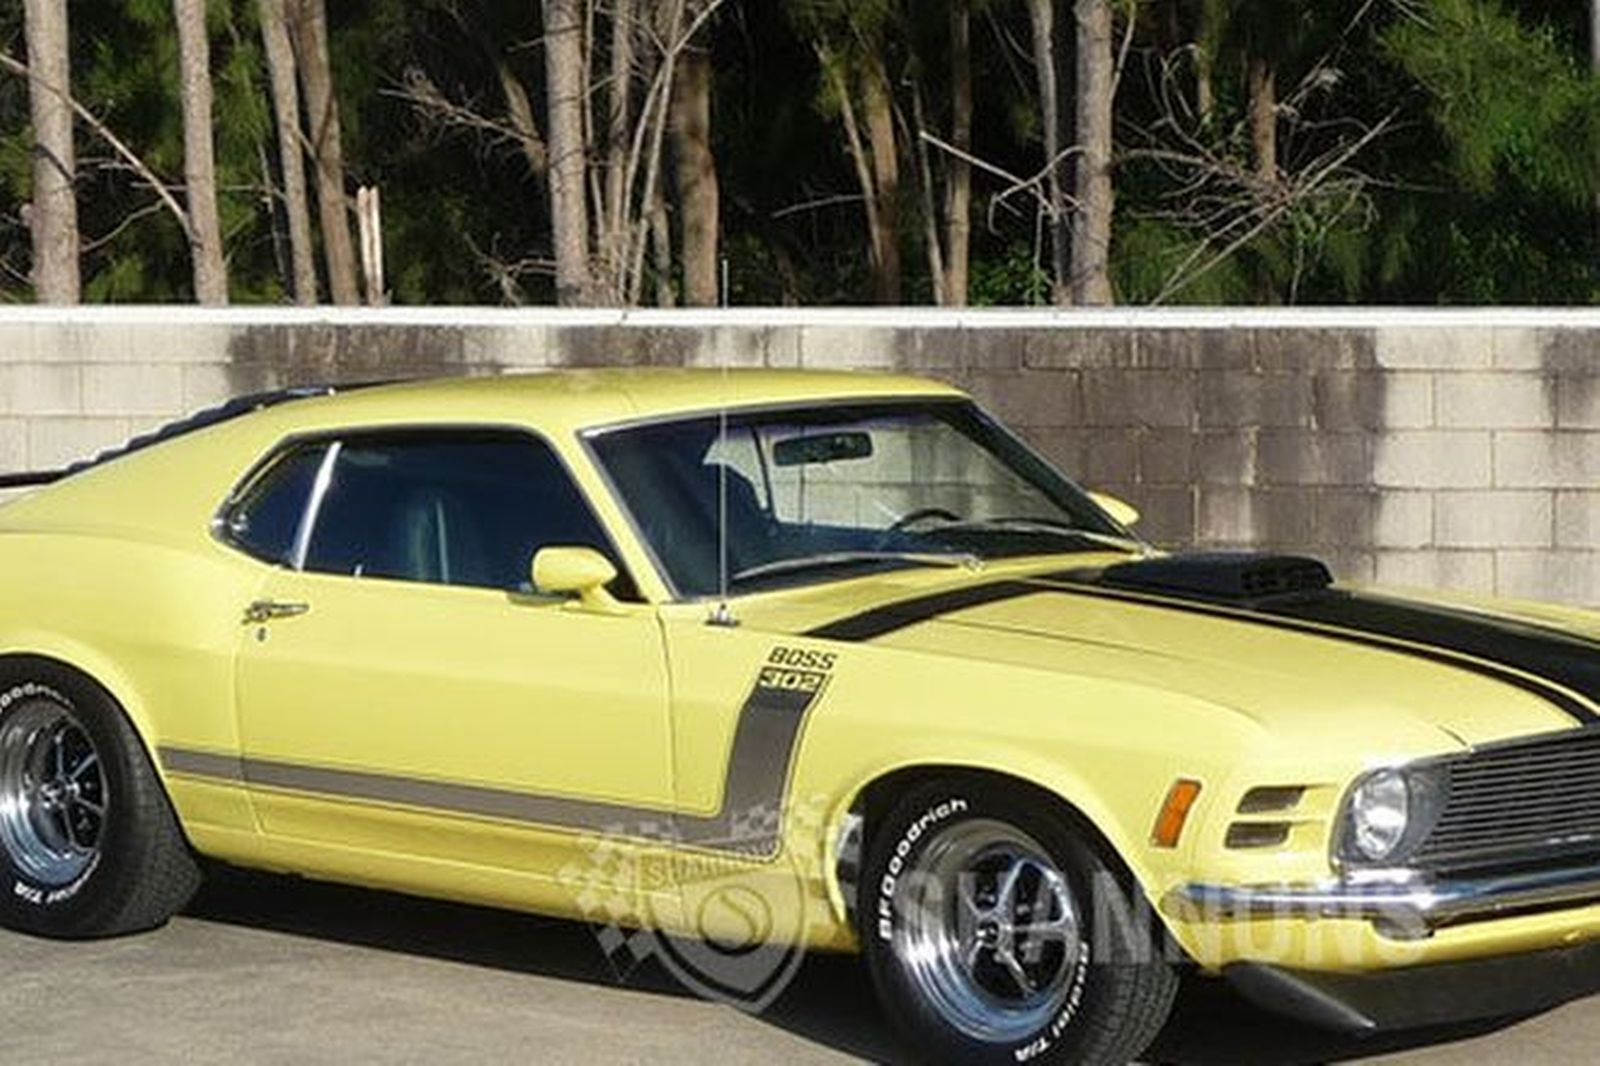 Ford Mustang Boss 302 Fastback Lhd Auctions Lot 25